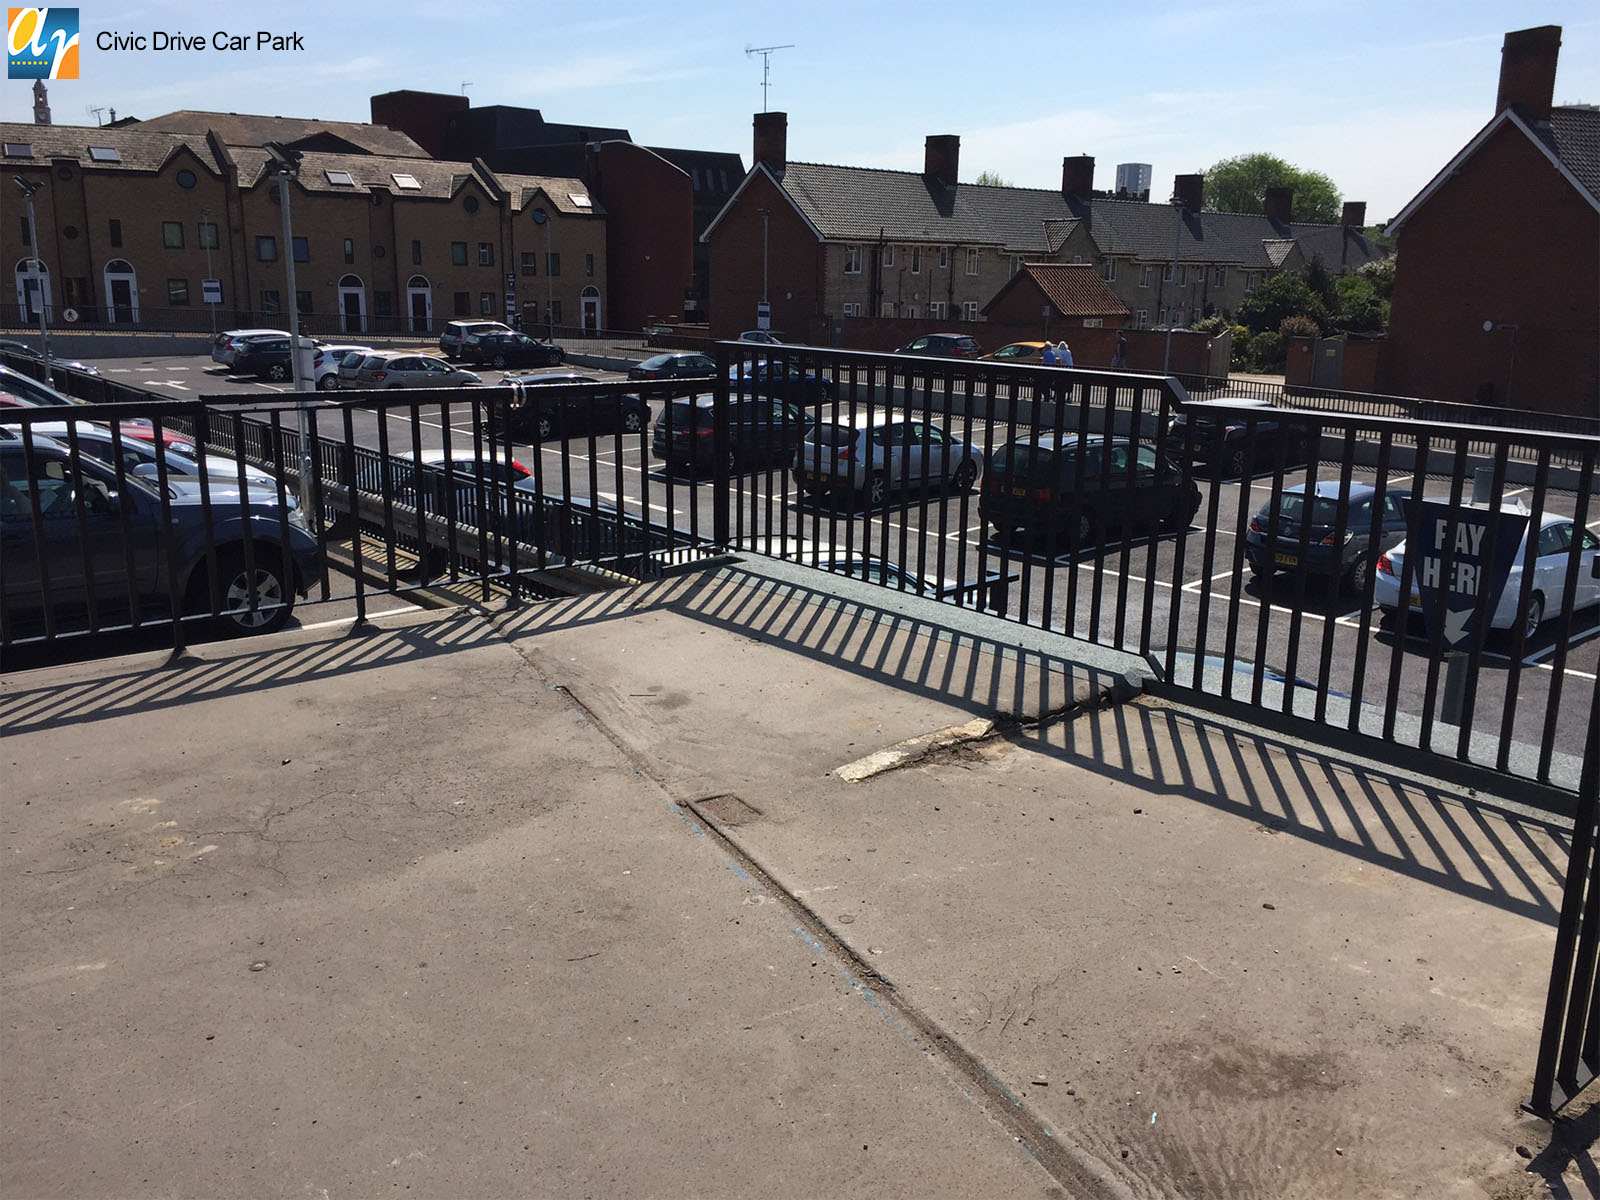 Civic Drive Car Park flat top metal railings